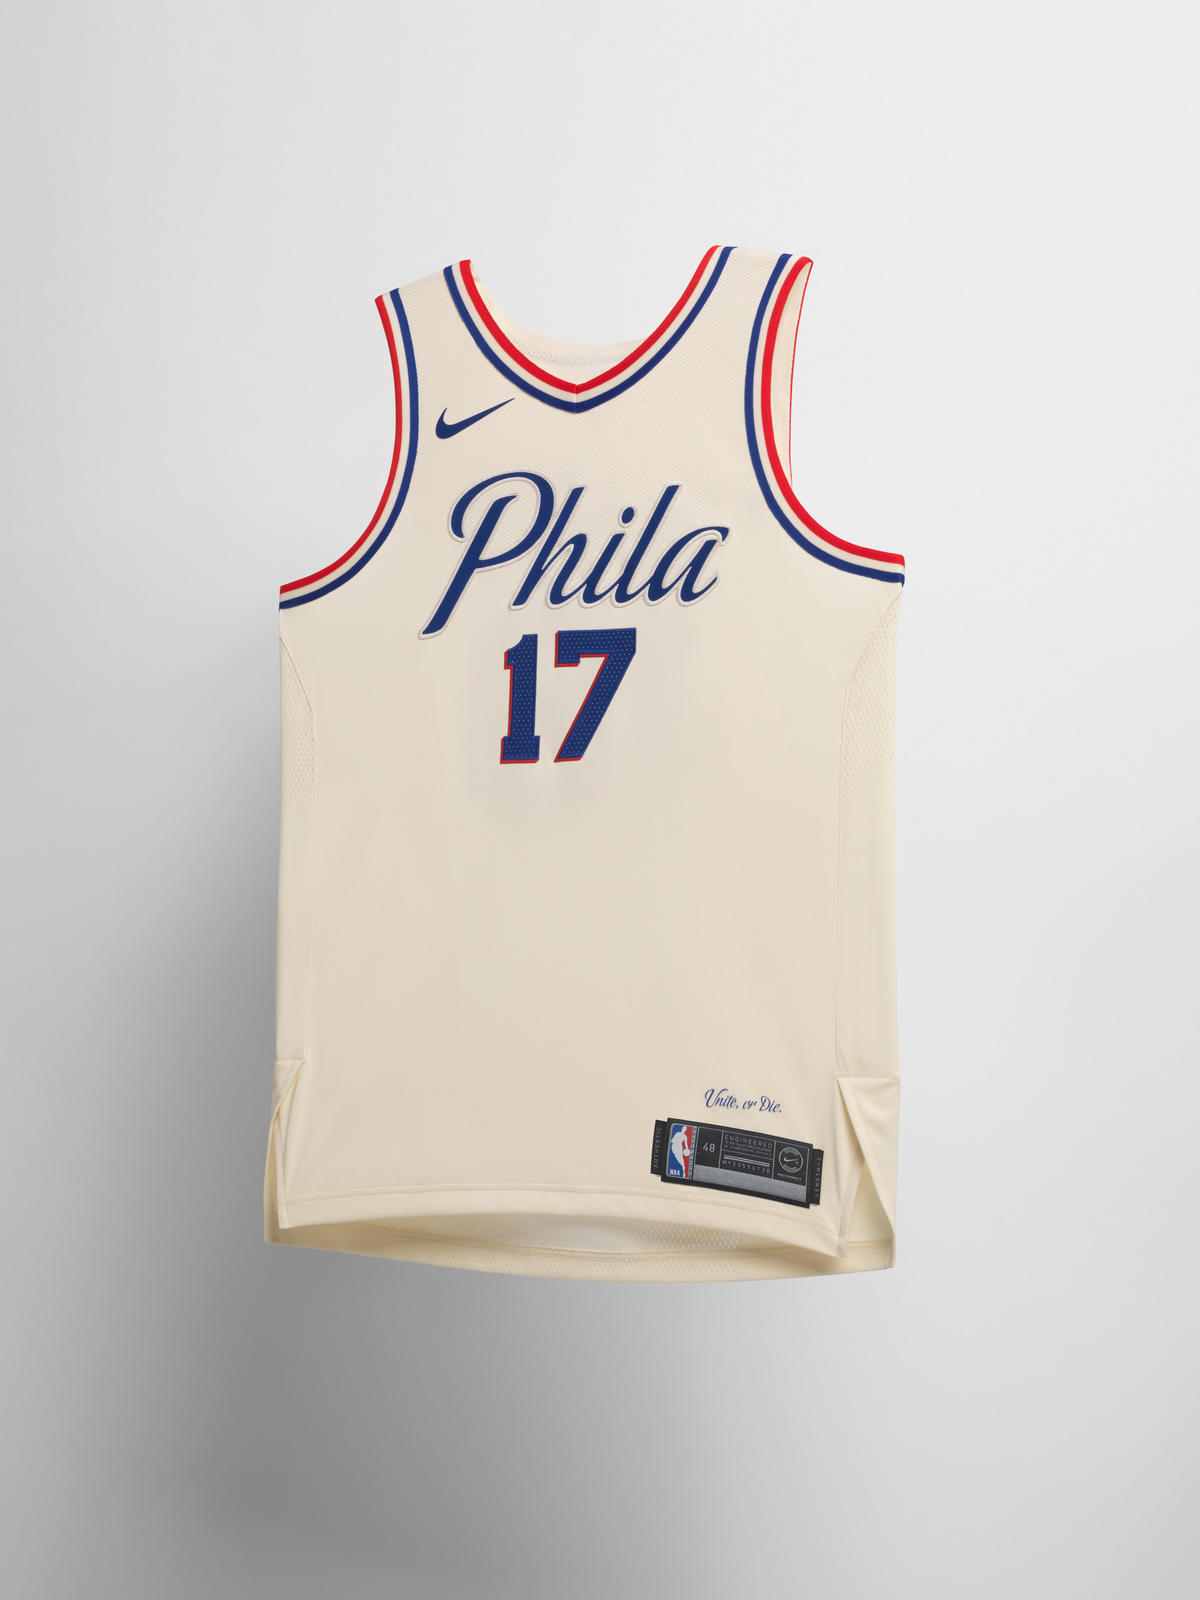 c0ca14a90 Nike NBA City Edition Uniform 56. Philadelphia 76ers